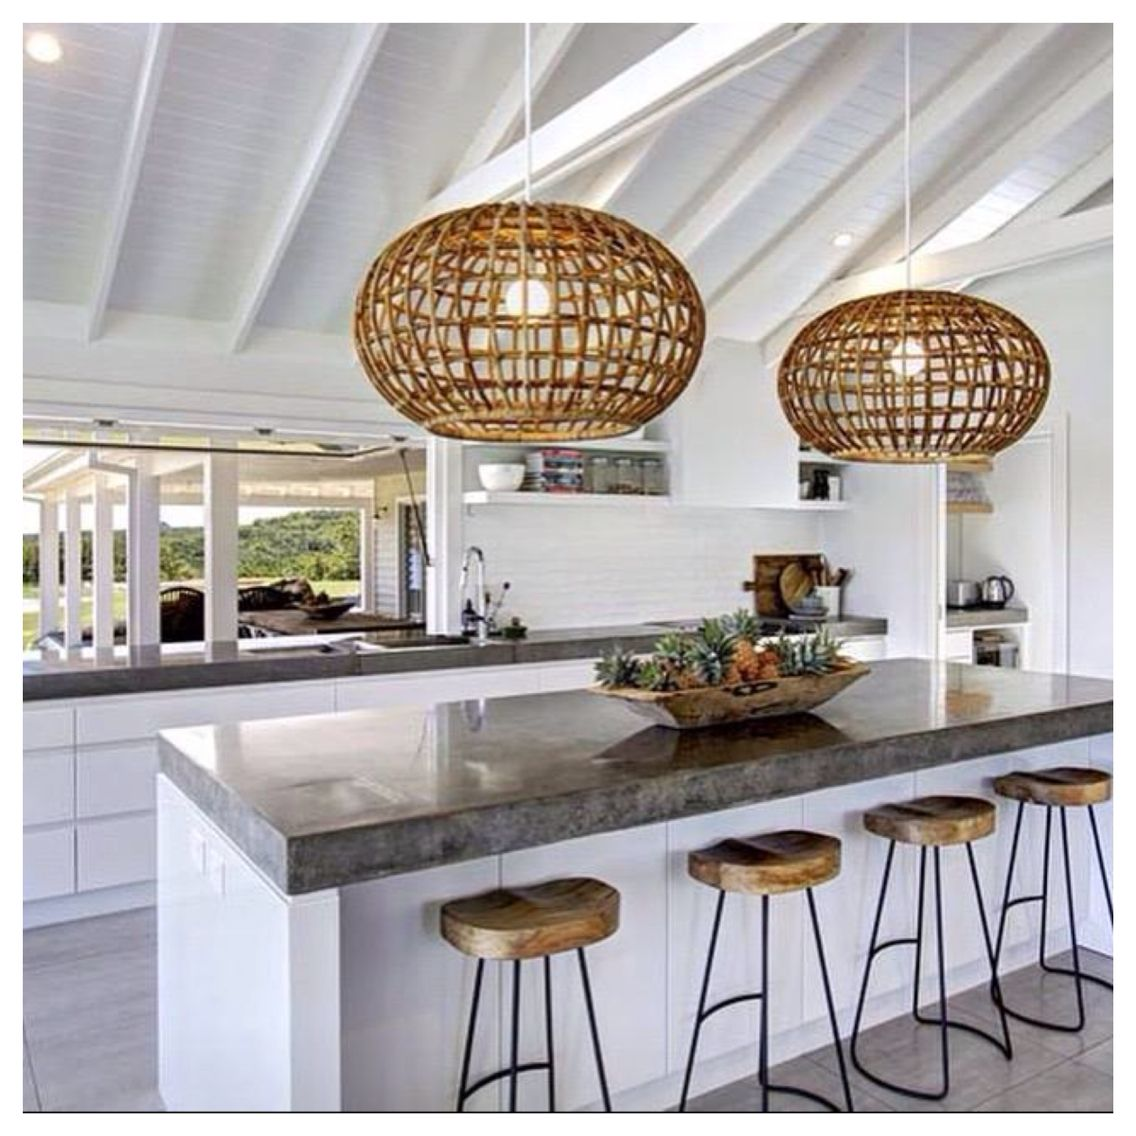 Pendant Lights For Kitchen Sink: Kitchen, Home And The Grove